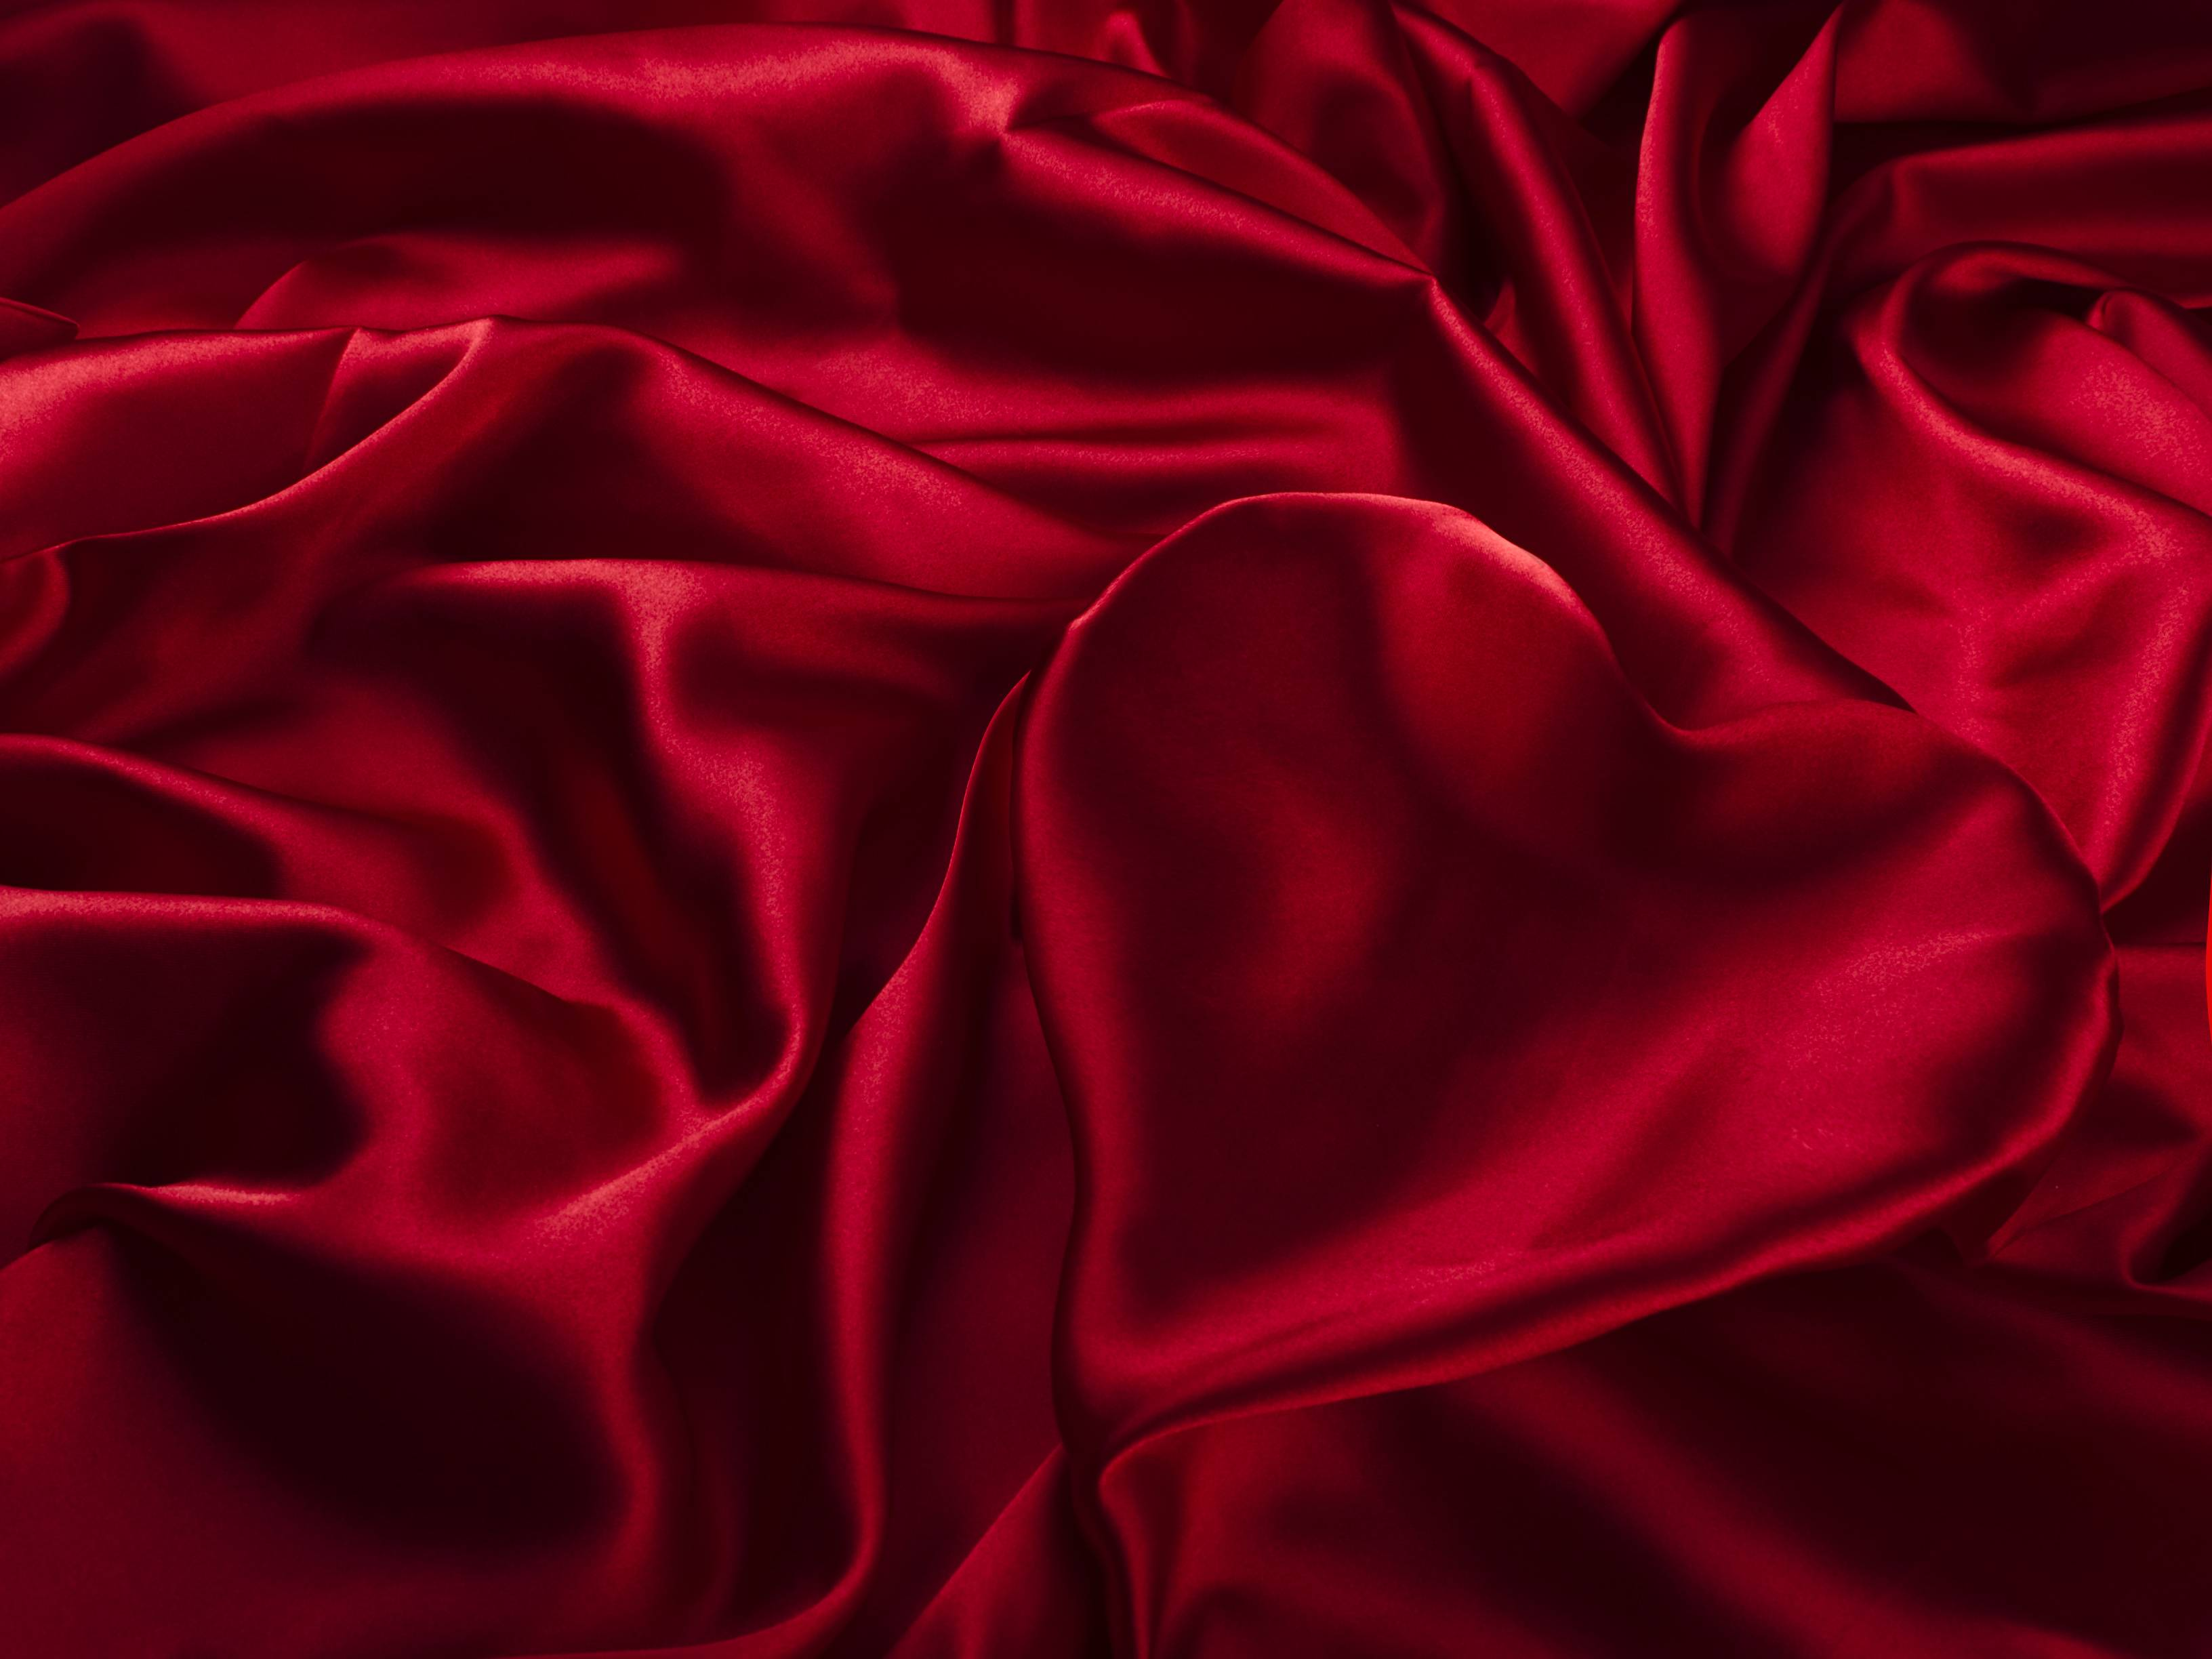 Red Satin Wallpapers - Wallpaper Cave